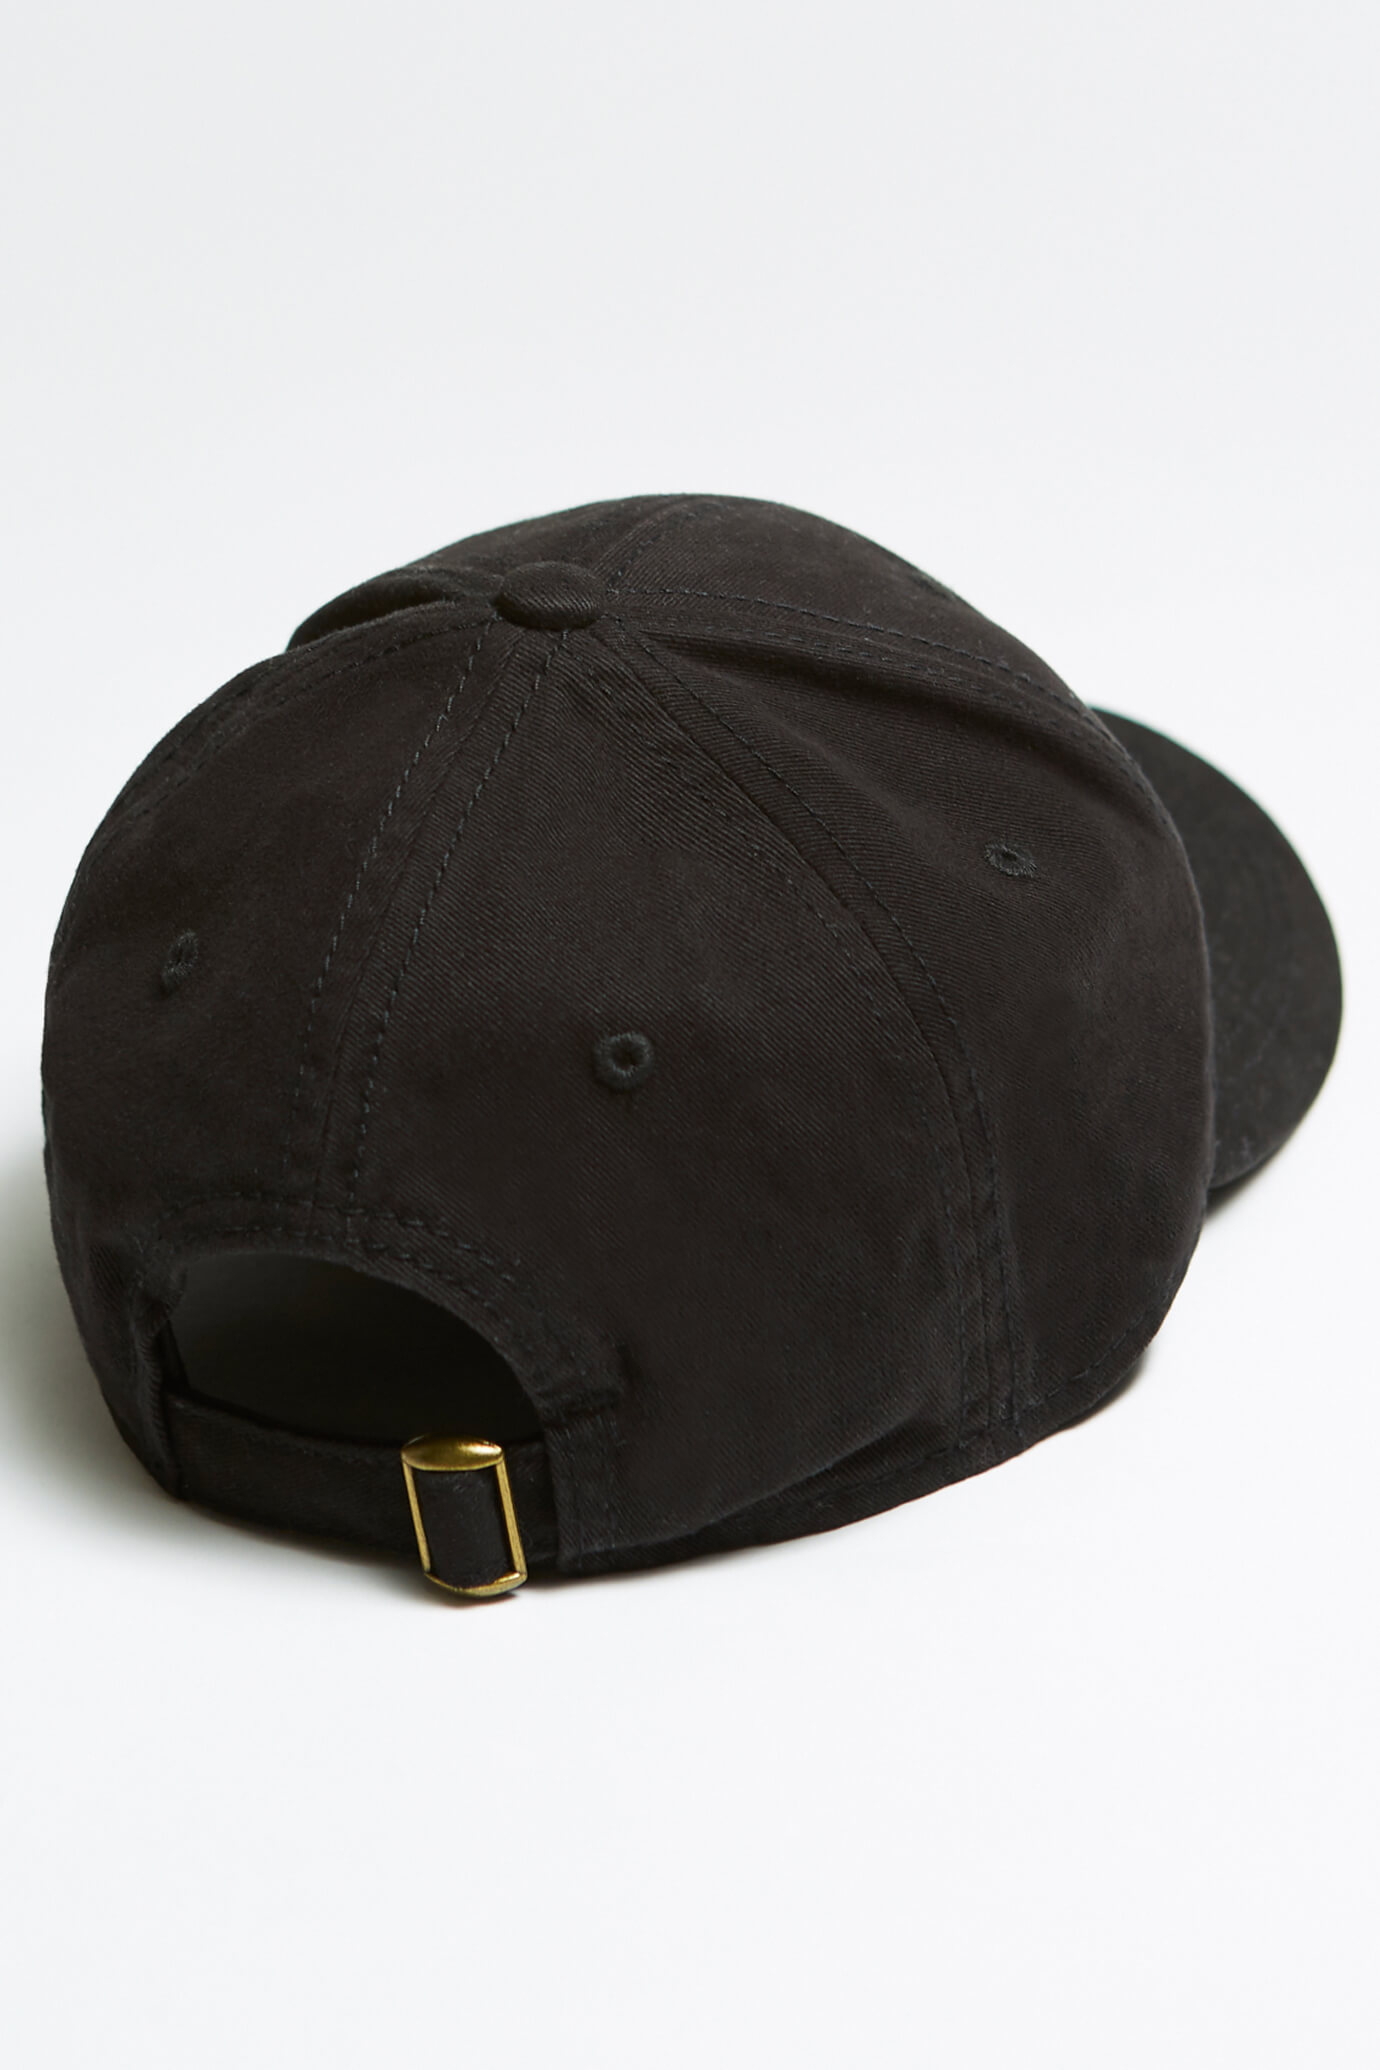 taproot pictures hat in black with rooty back